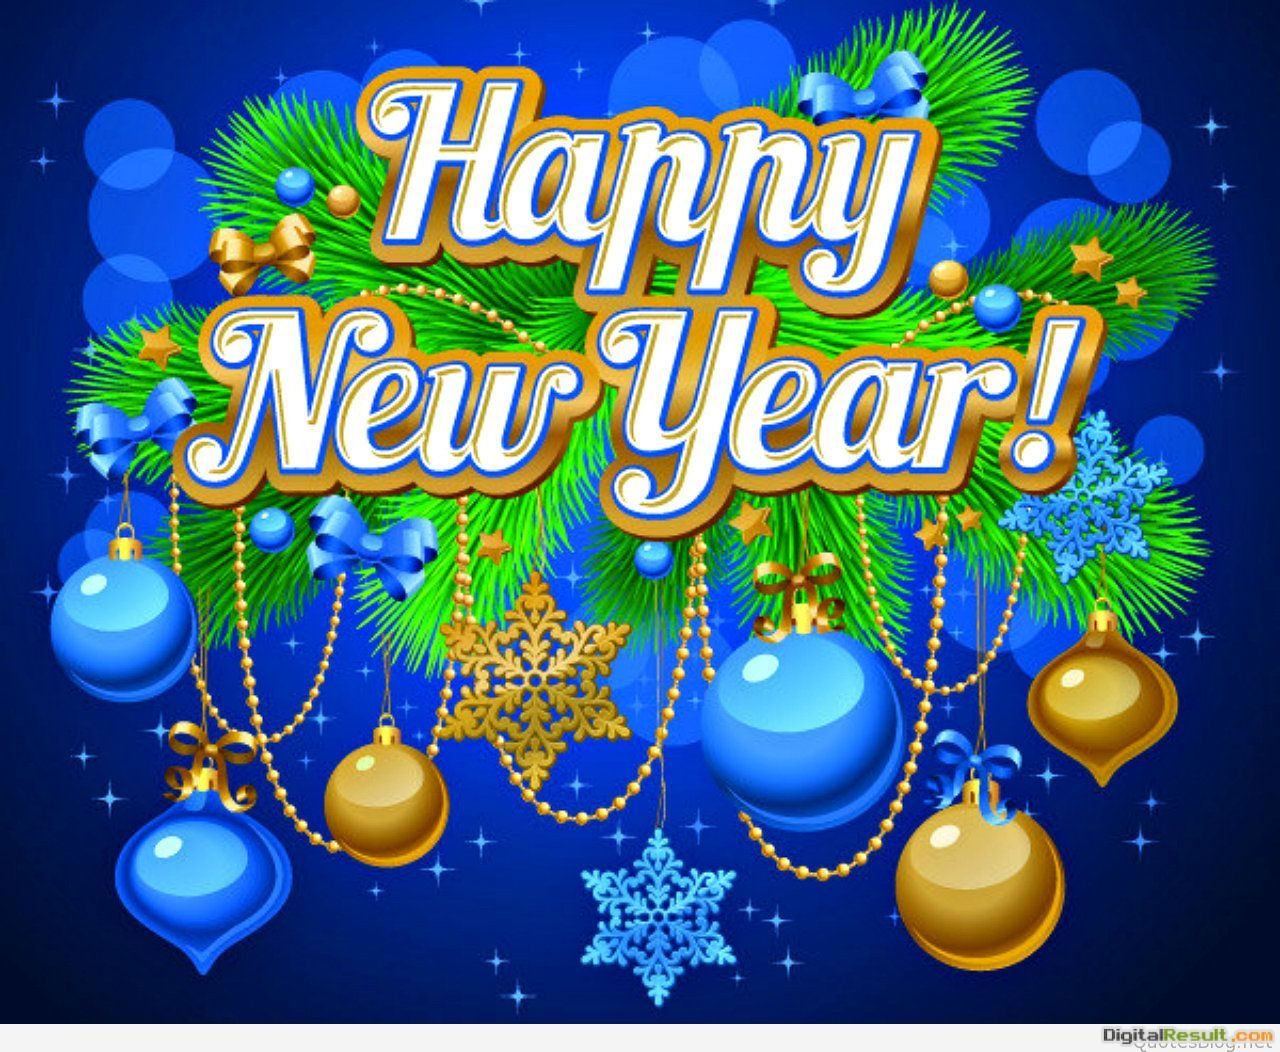 Best Happy New Year Backgrounds & wallpapers 2016 692